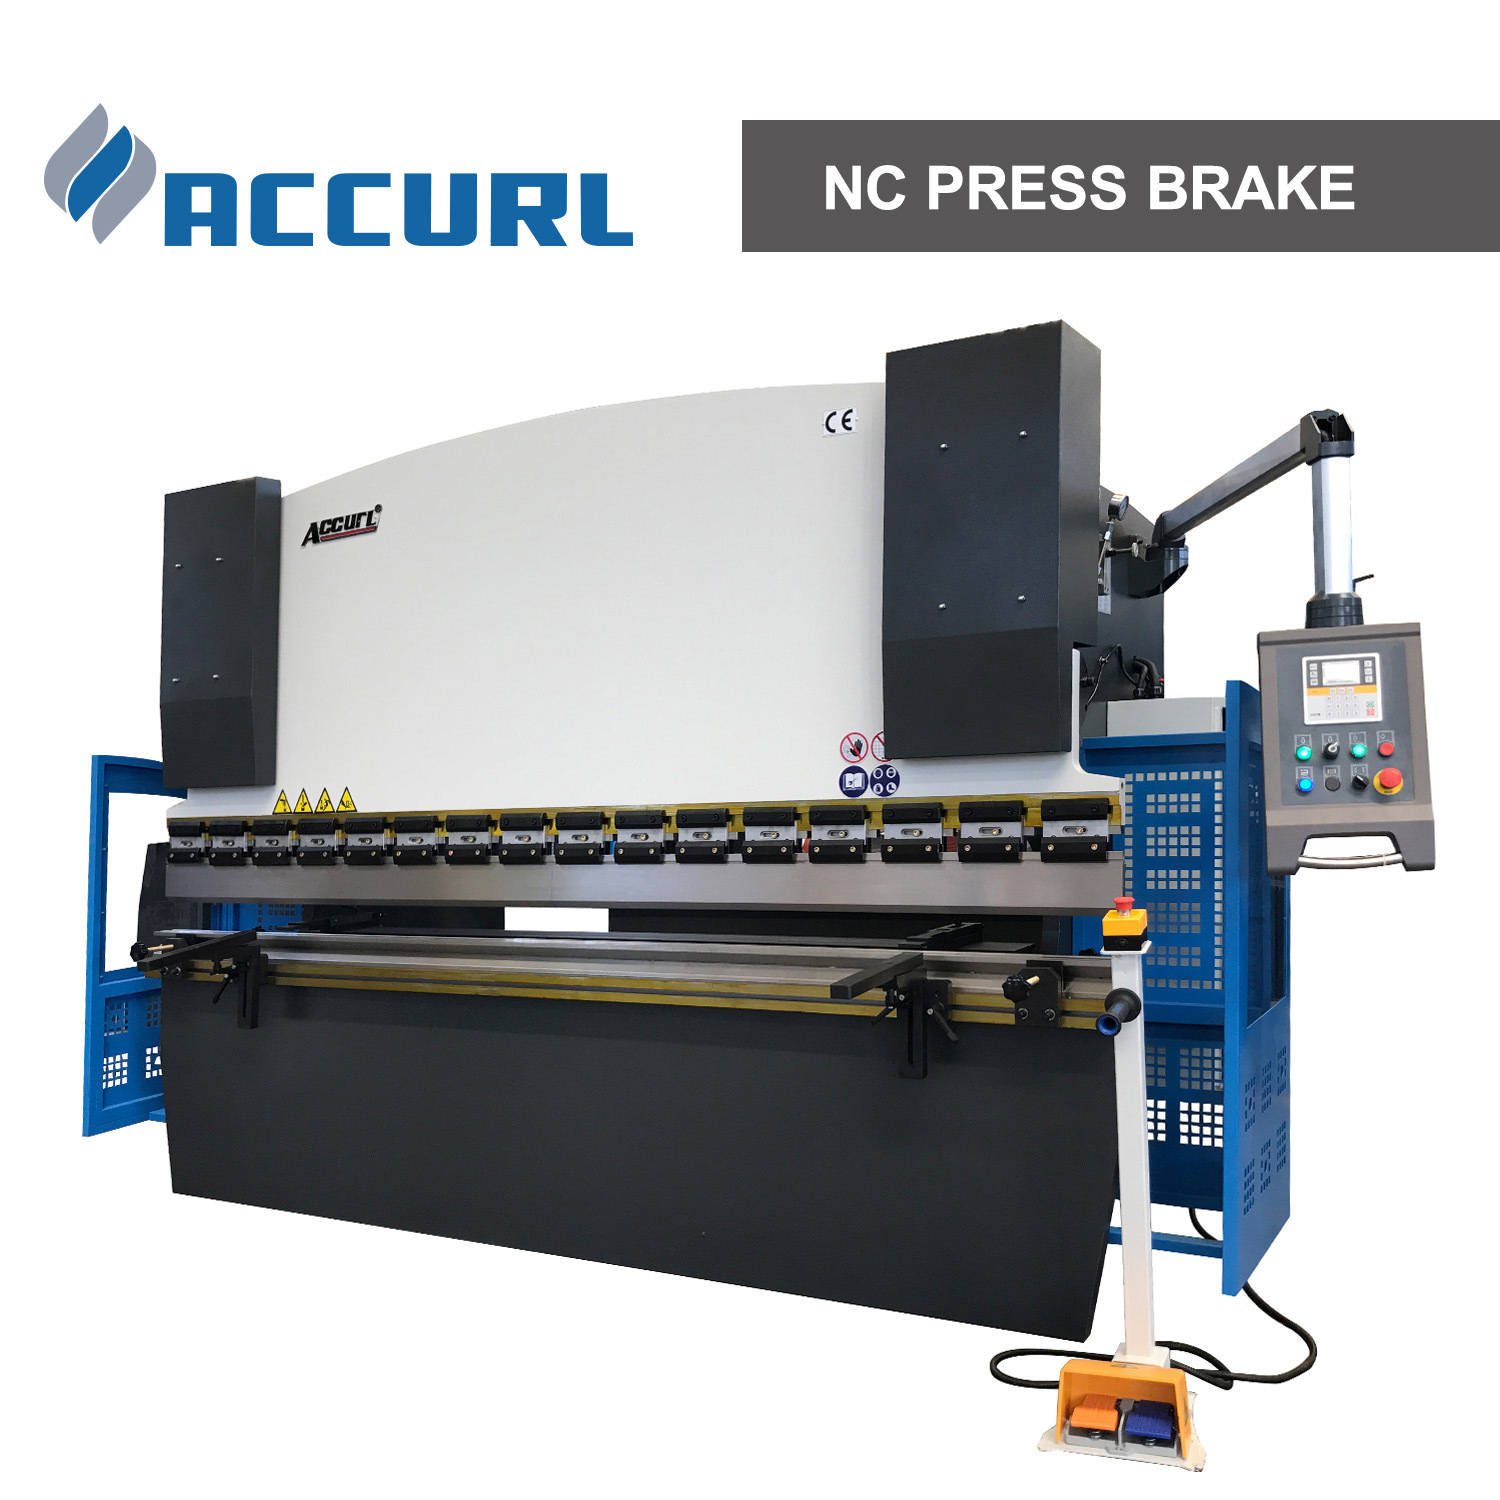 Press Brake 40t 1600mm with Estun E21 Nc Control System